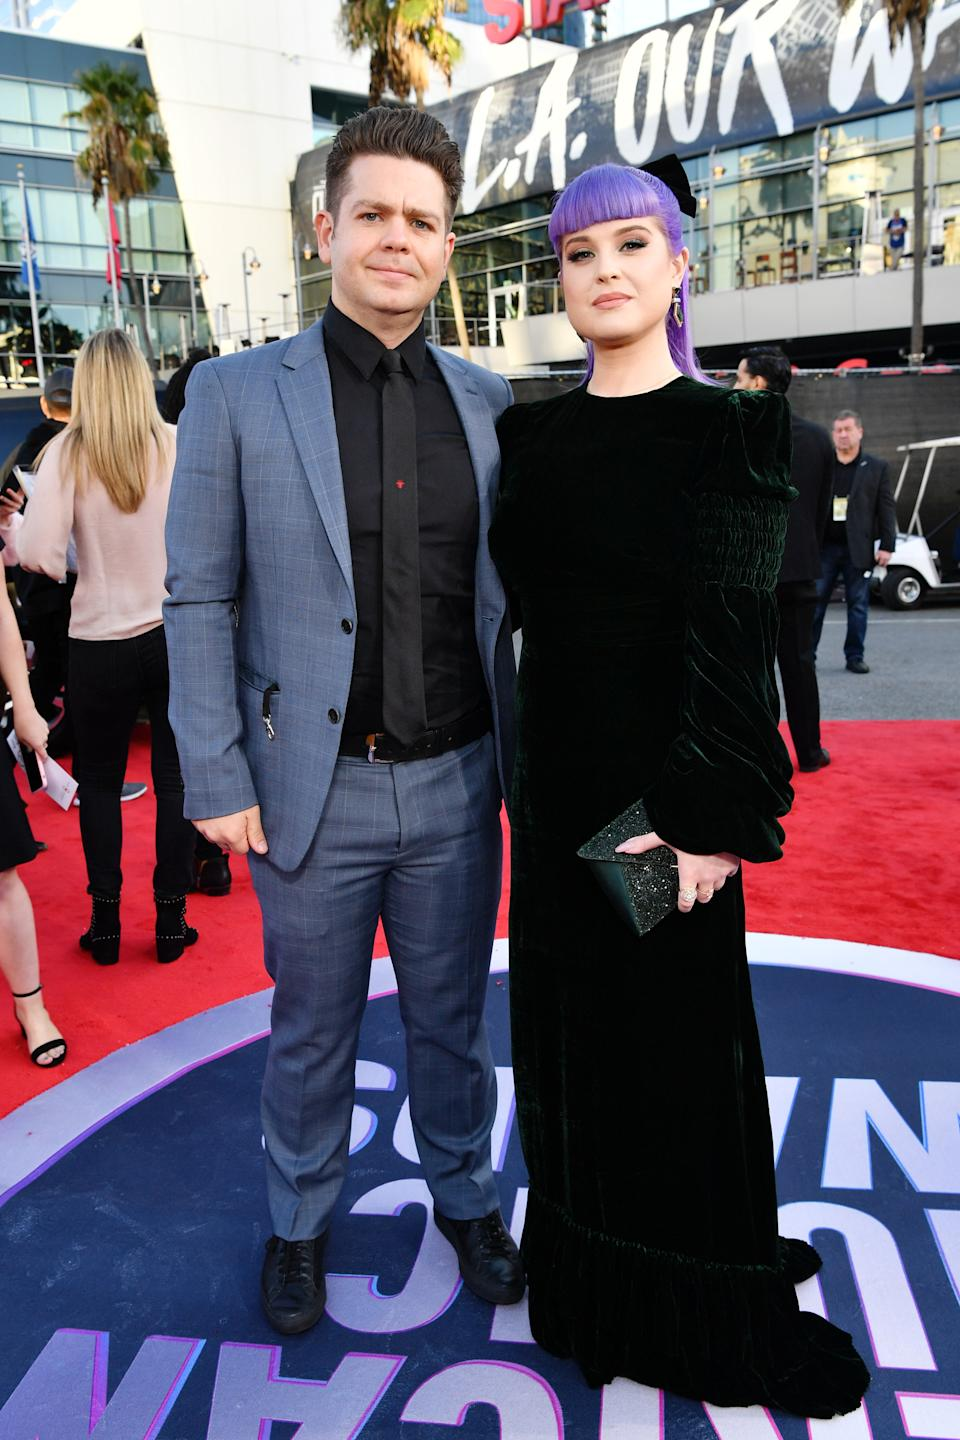 Jack Osbourne and Kelly Osbourne attend the 2019 American Music Awards at Microsoft Theater on November 24, 2019 in Los Angeles, California. (Photo by Emma McIntyre/Getty Images for dcp)